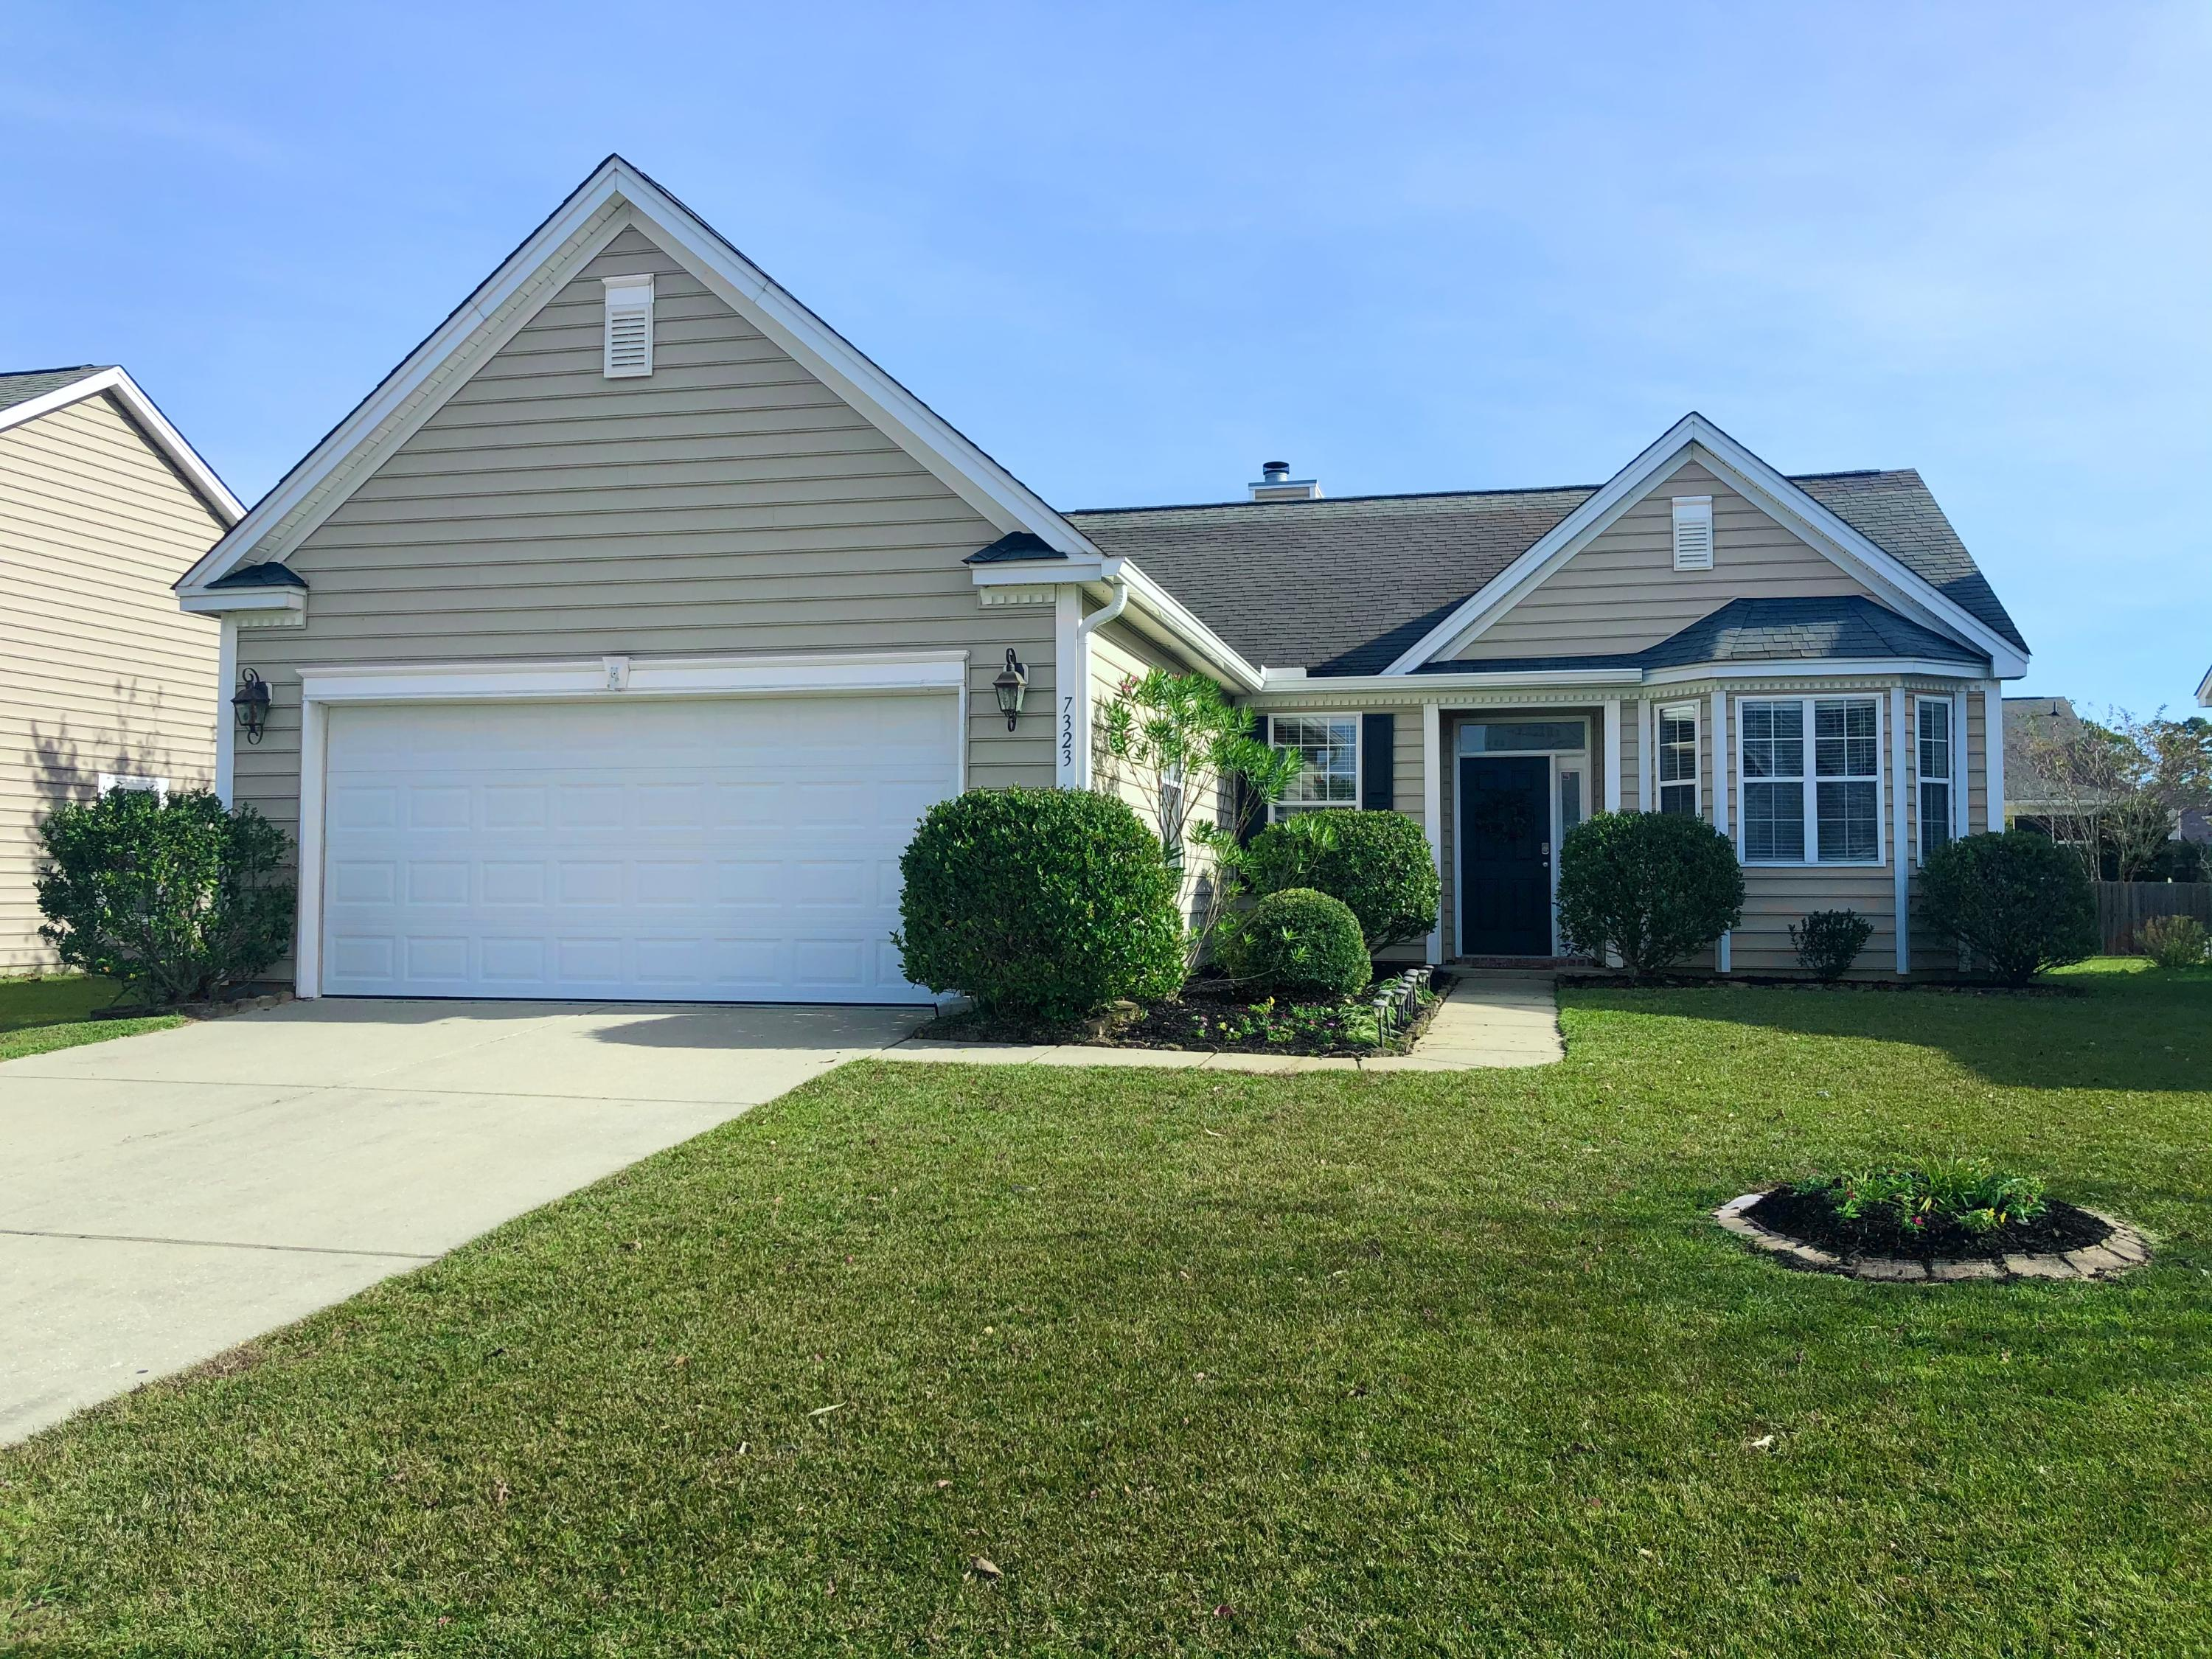 7323 Water Thrush Court Hanahan, Sc 29410